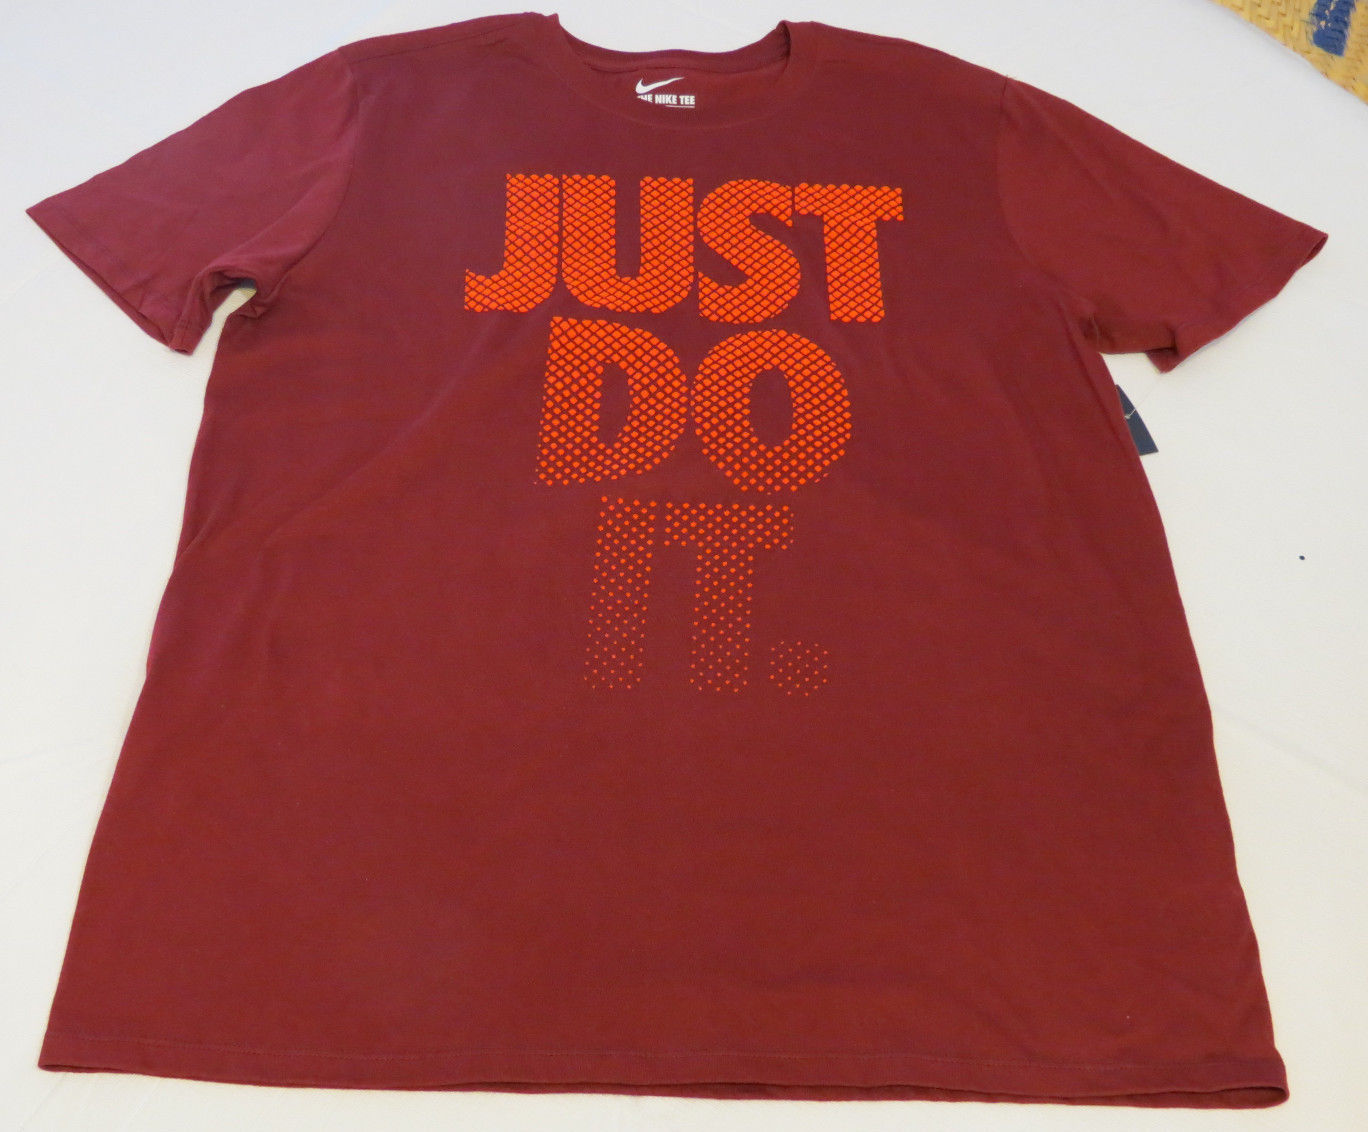 1a2a1e0423e7 The Nike Tee Dri Fit L lg Athletic Cut t and 50 similar items